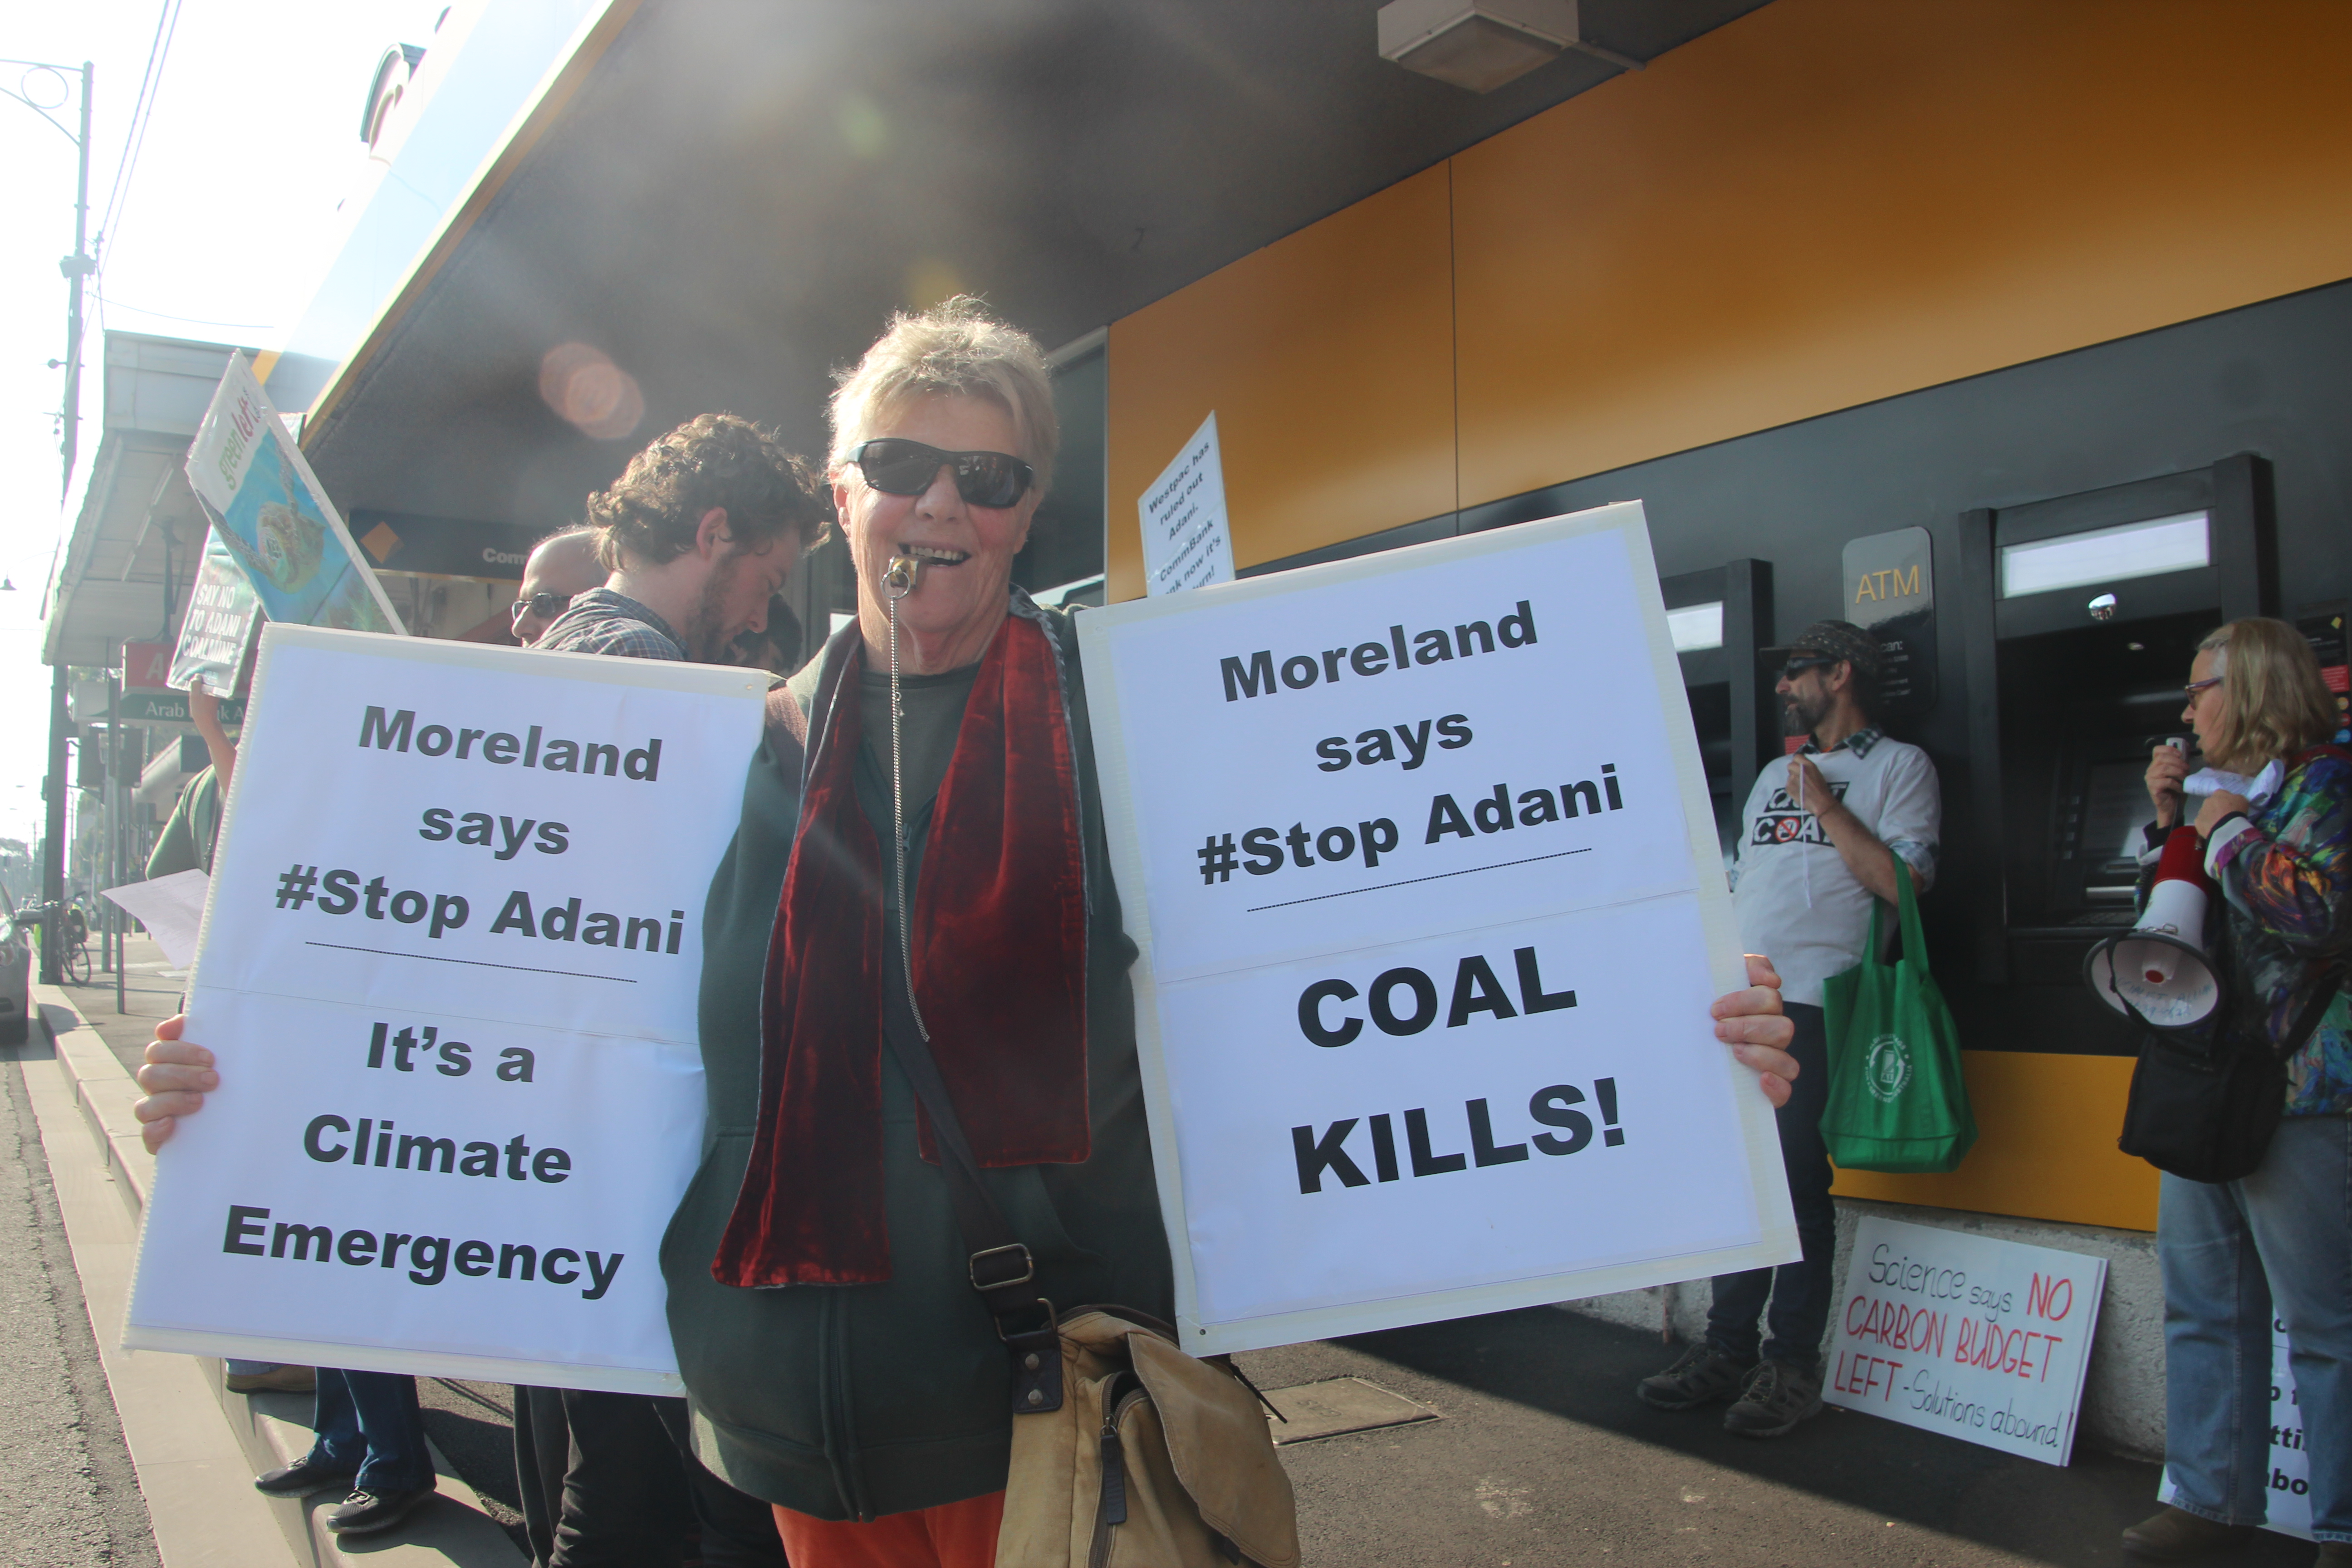 Environmental activists protesting against the coal mines and Adani.